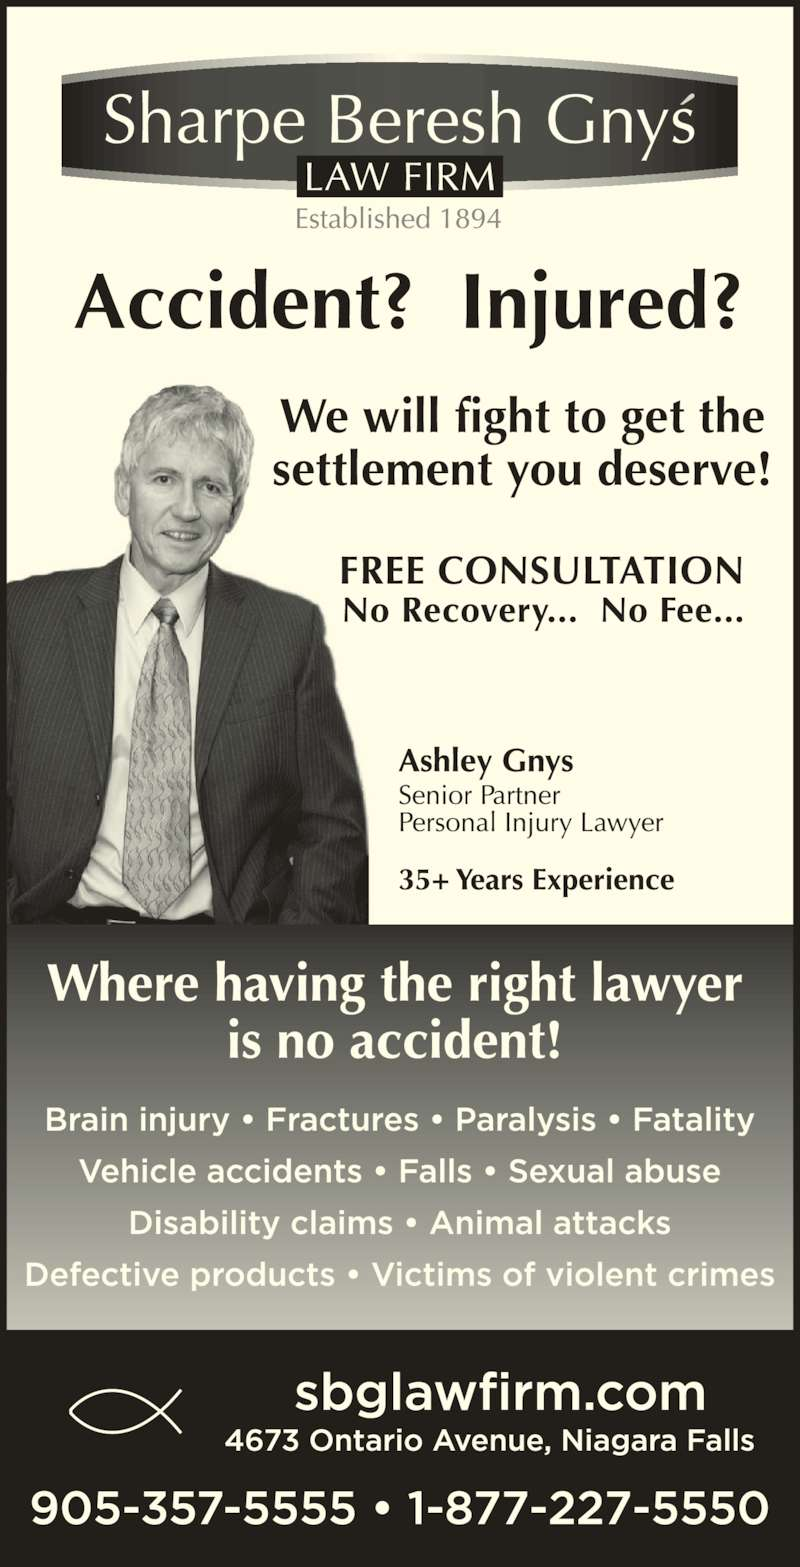 Sharpe Beresh & Gnys (905-357-5555) - Display Ad - We will fight to get the settlement you deserve!